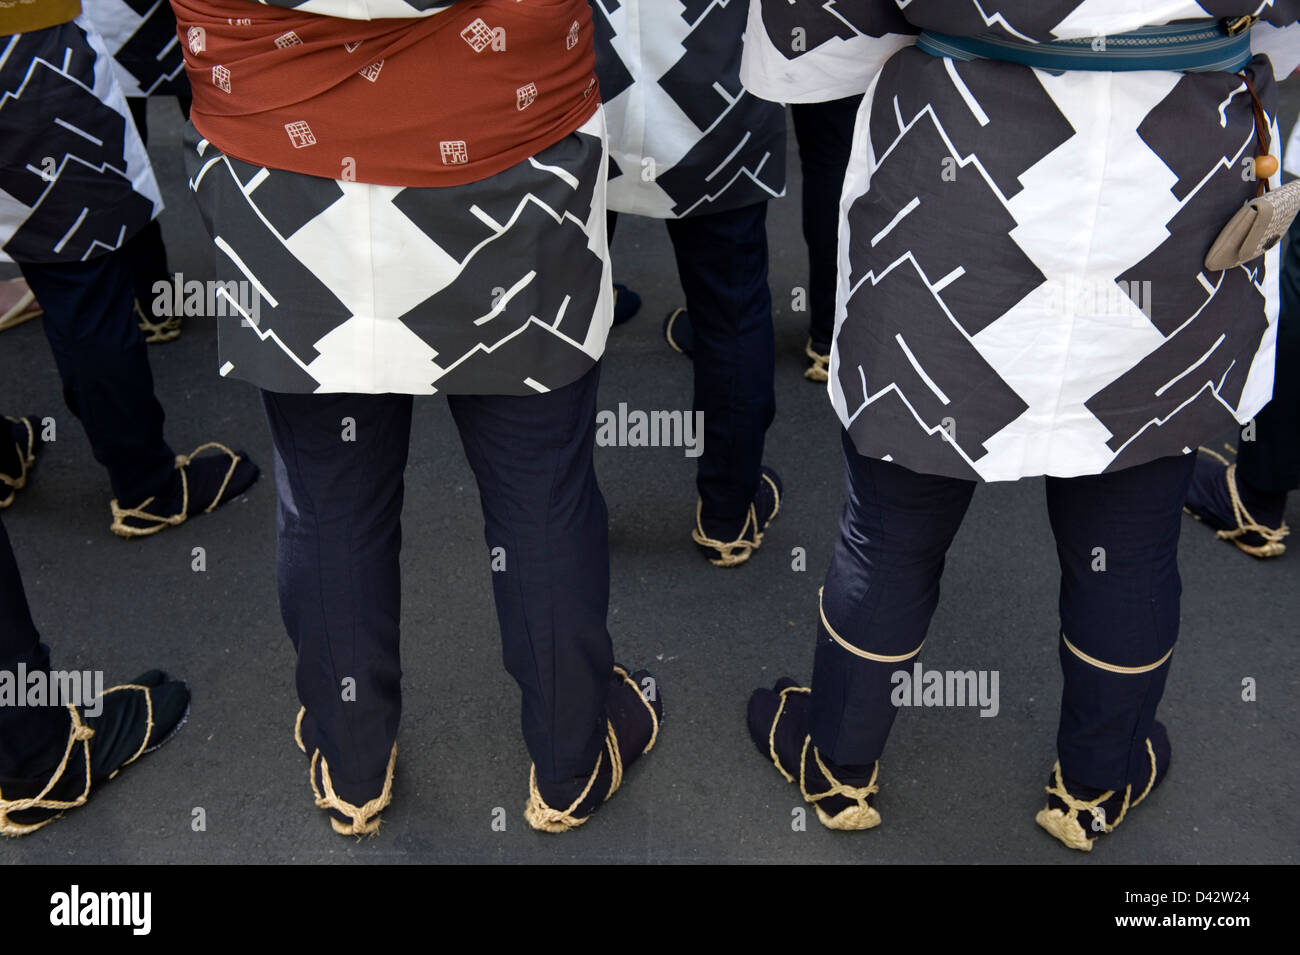 Detail of Sanja Matsuri Festival participants in Asakusa, Tokyo wearing traditional happi coats and waraji straw - Stock Image